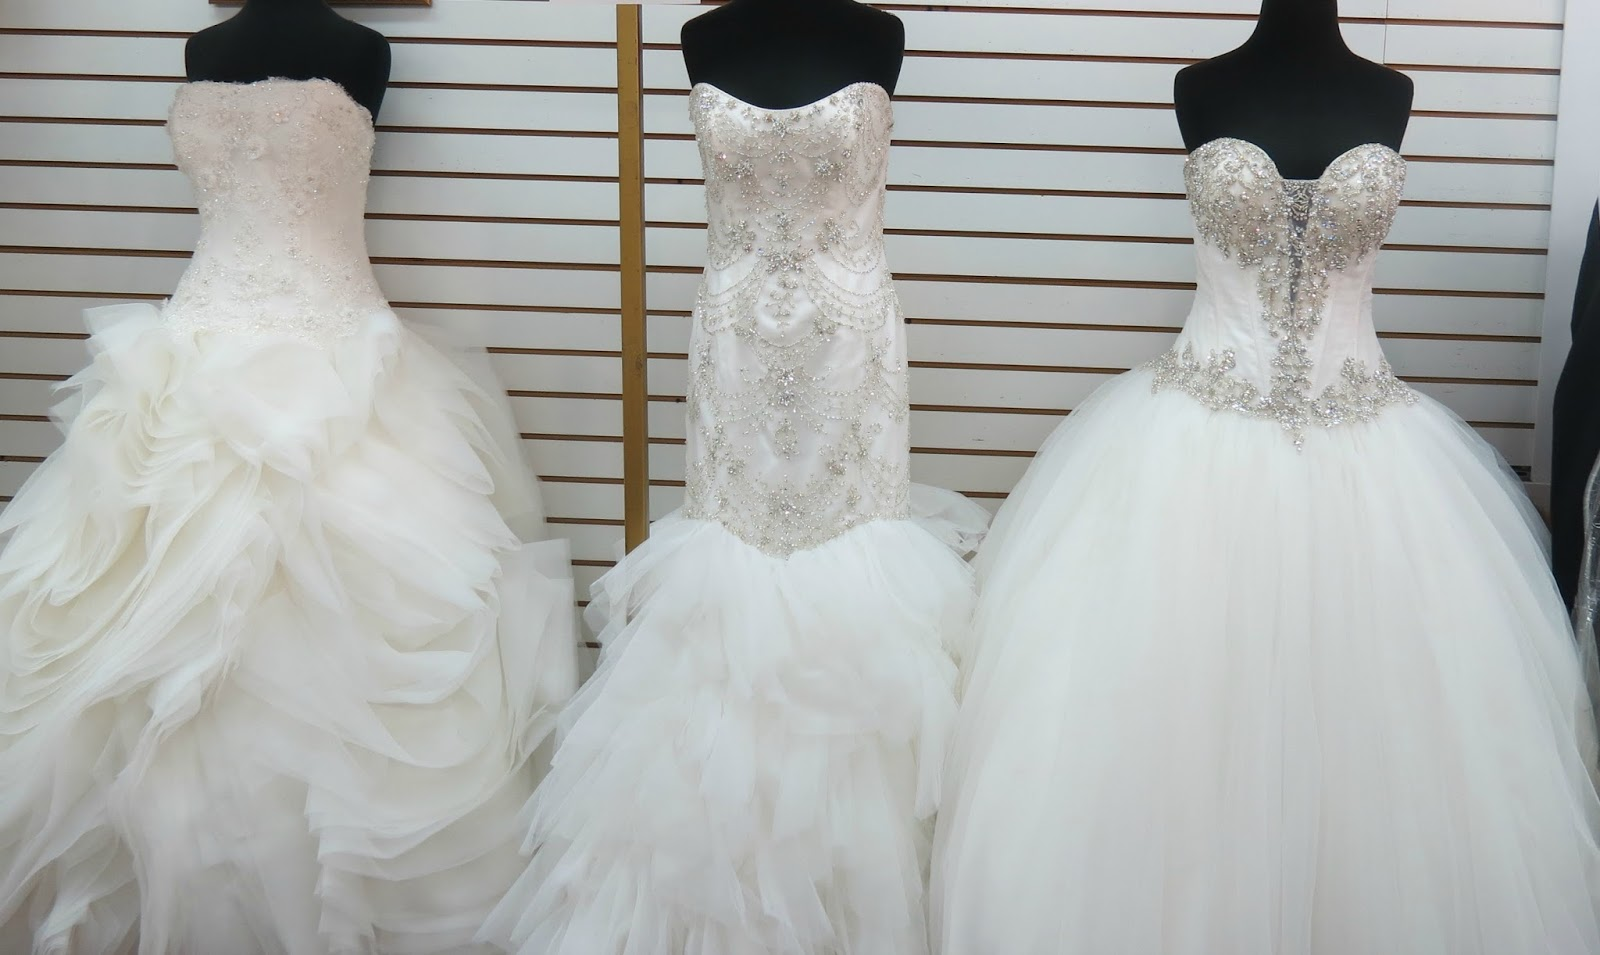 Gowns in downtown los angeles - Wedding Dresses Los Angeles Fashion District 98